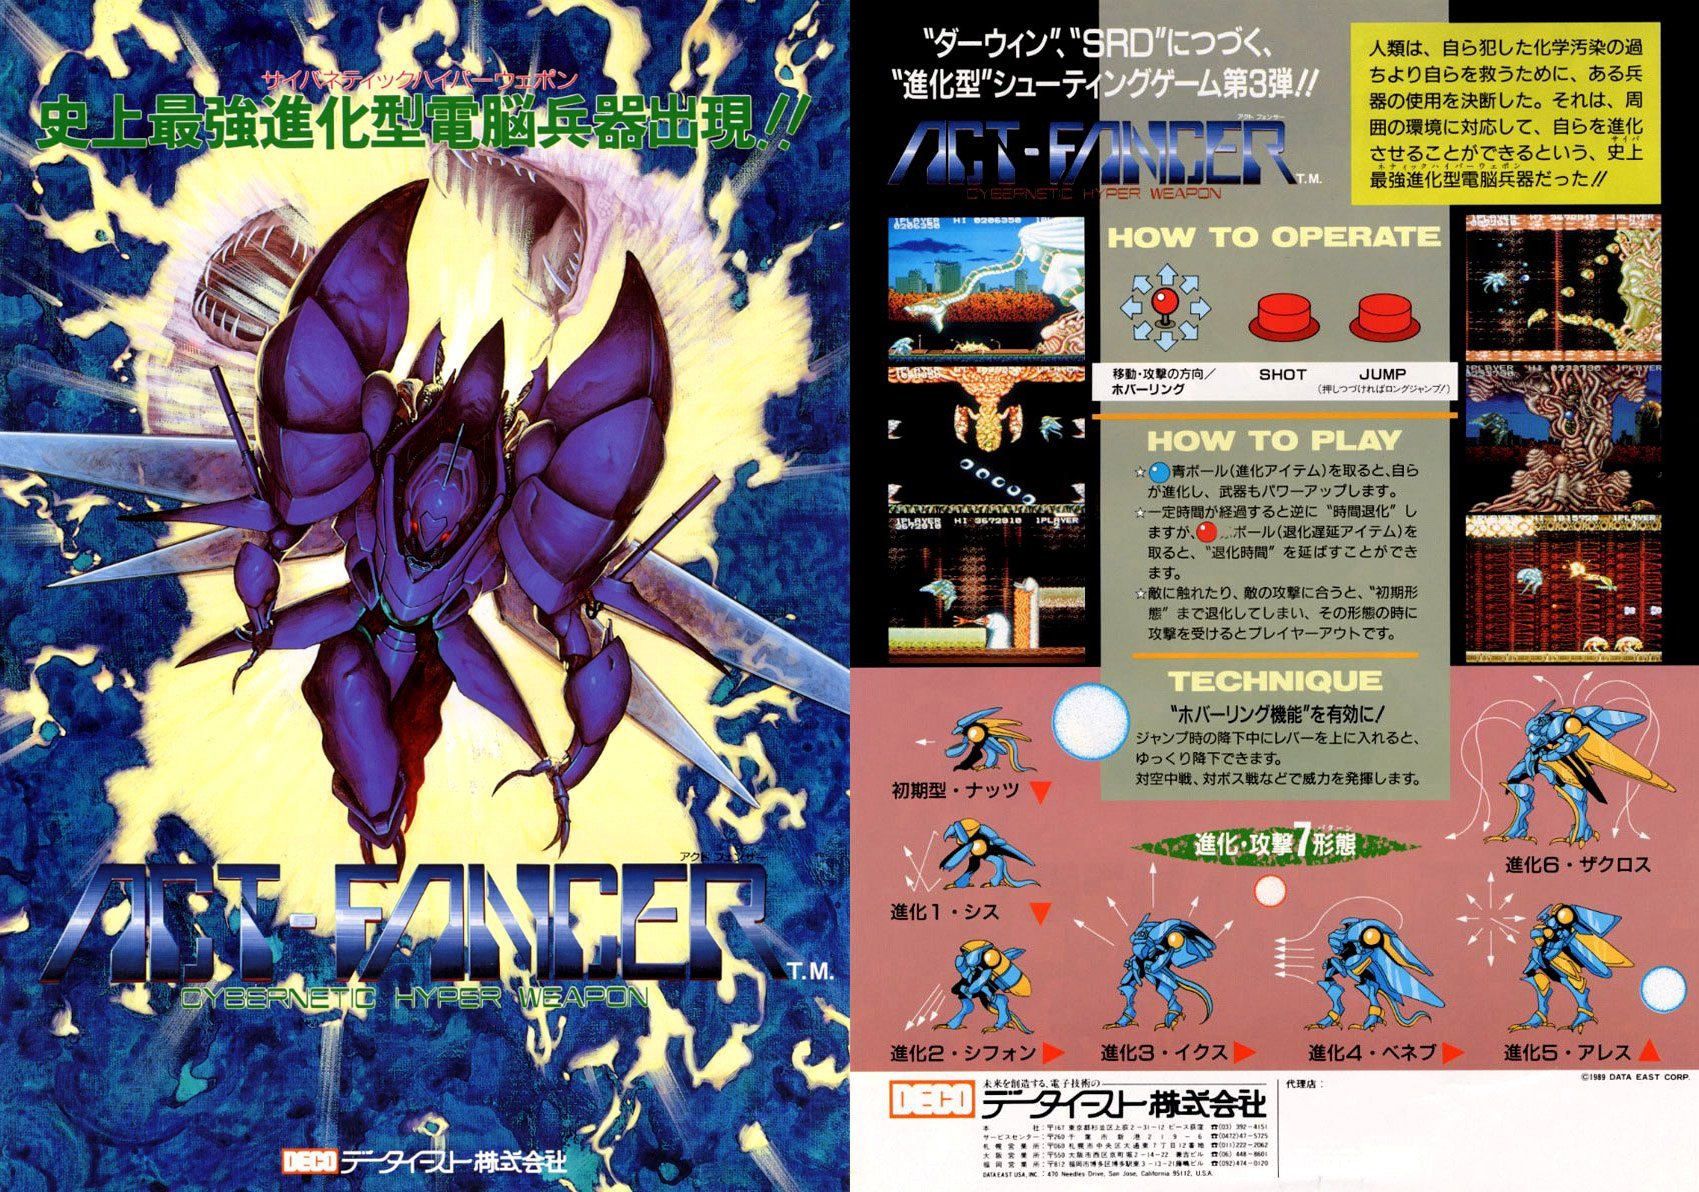 Act-Fancer: Cybernetic Hyper Weapon (1989)